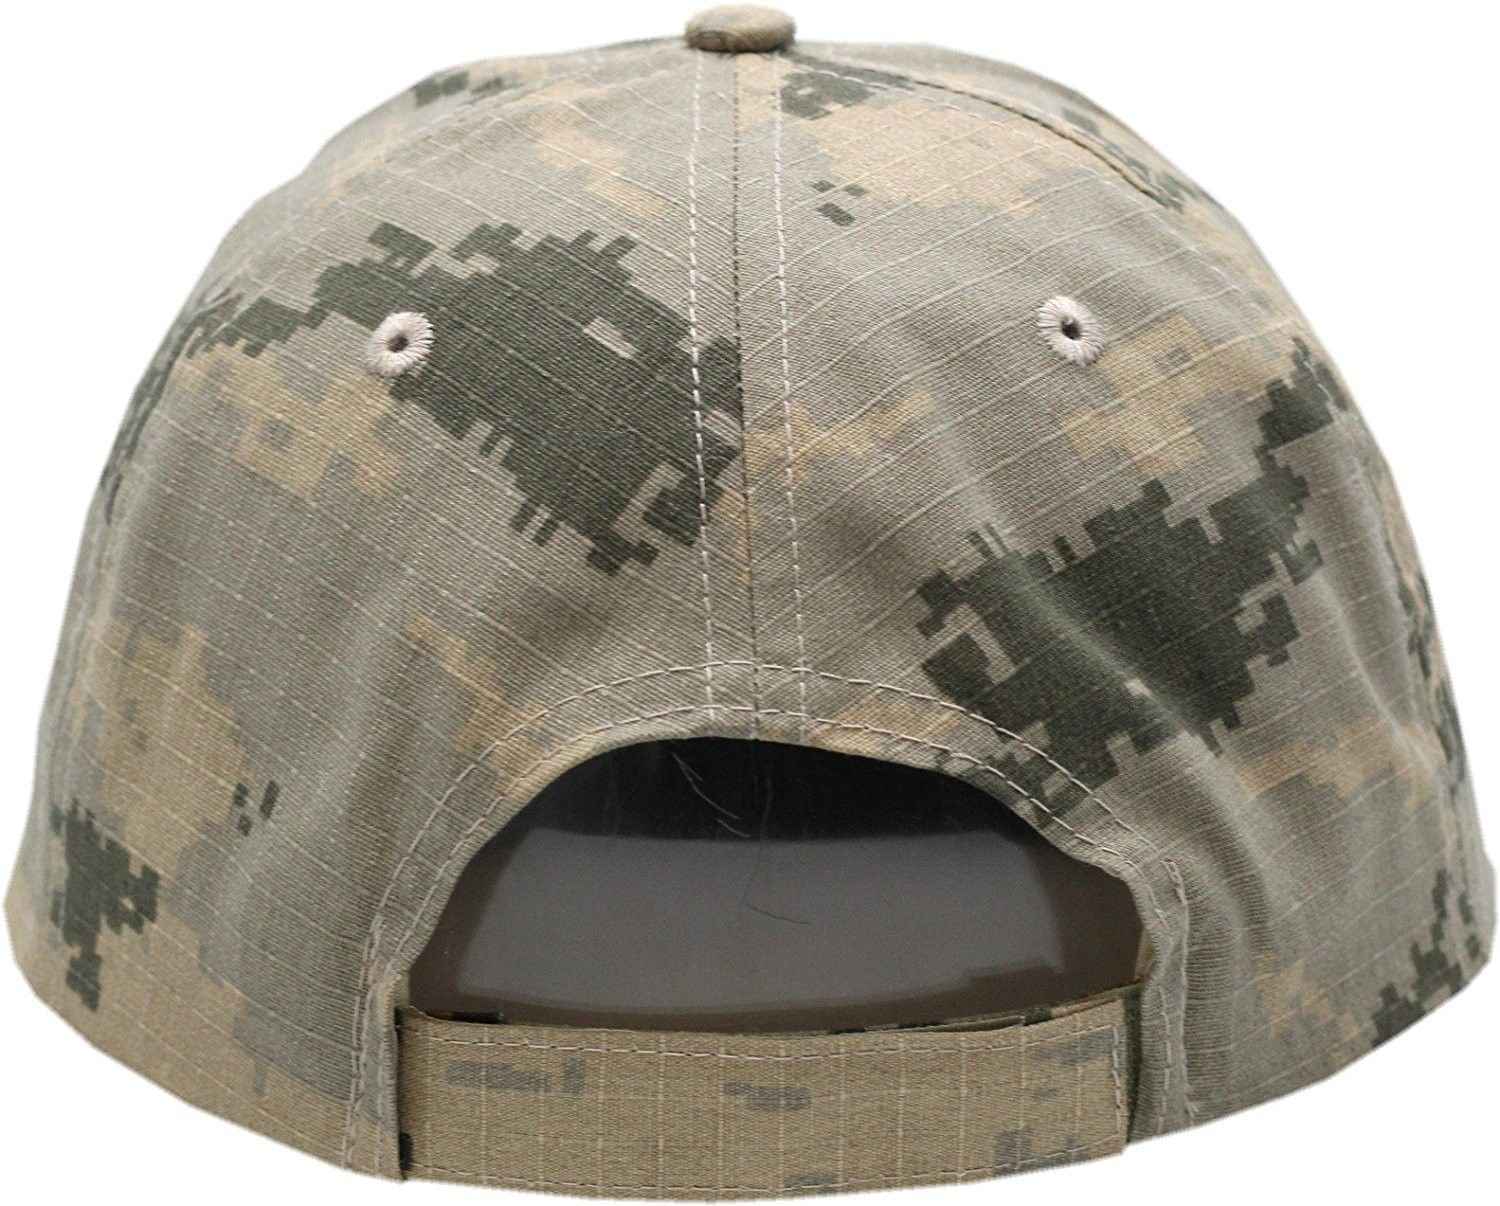 Make America Great Again Digi Camo Velcro Back Hat-10746 ... 0af48d6278